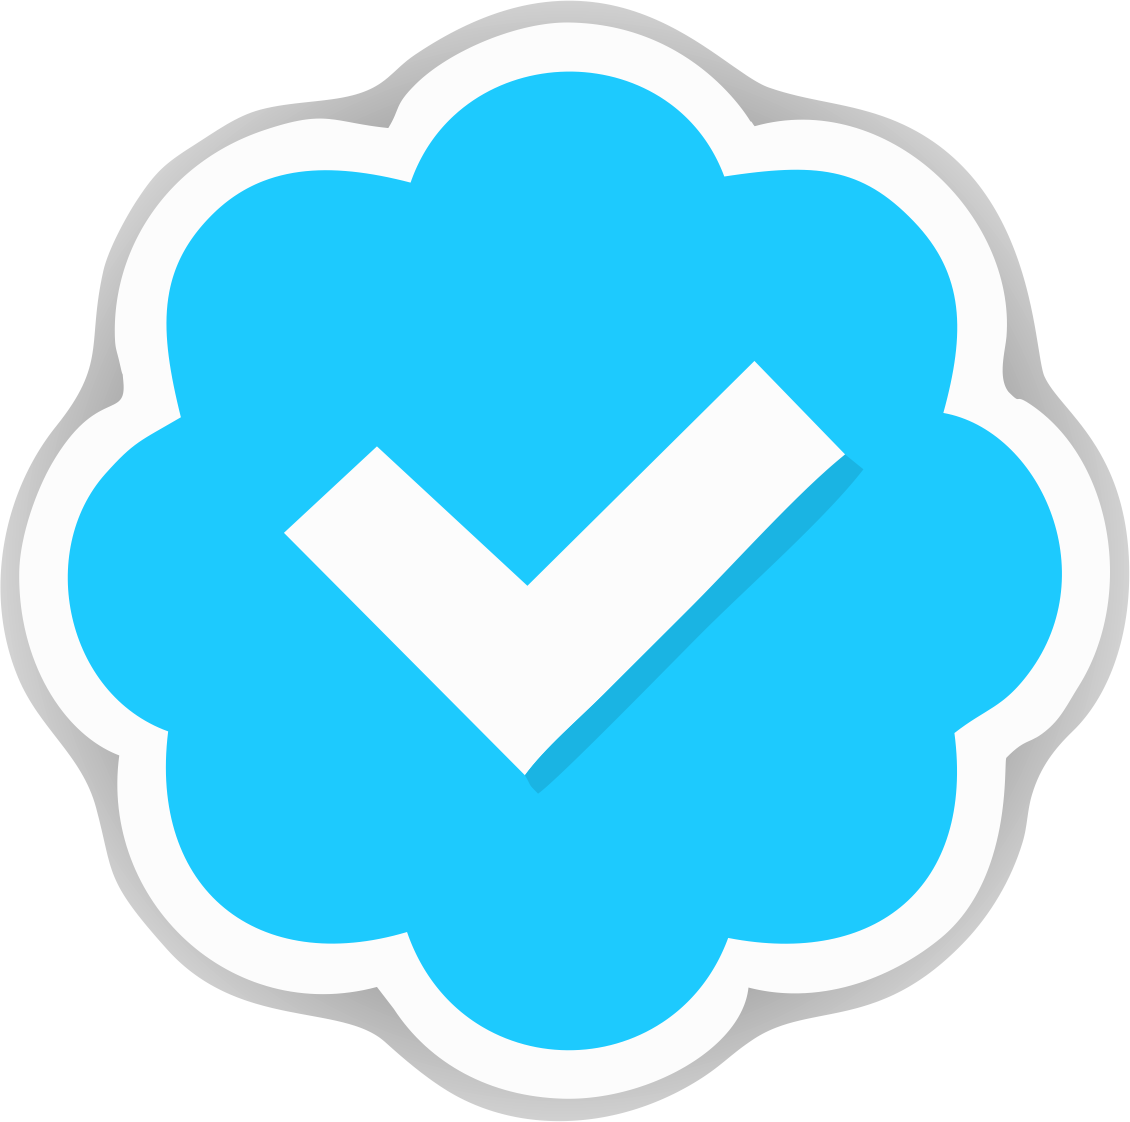 Twitter Announces Application Process for Verified Accounts.